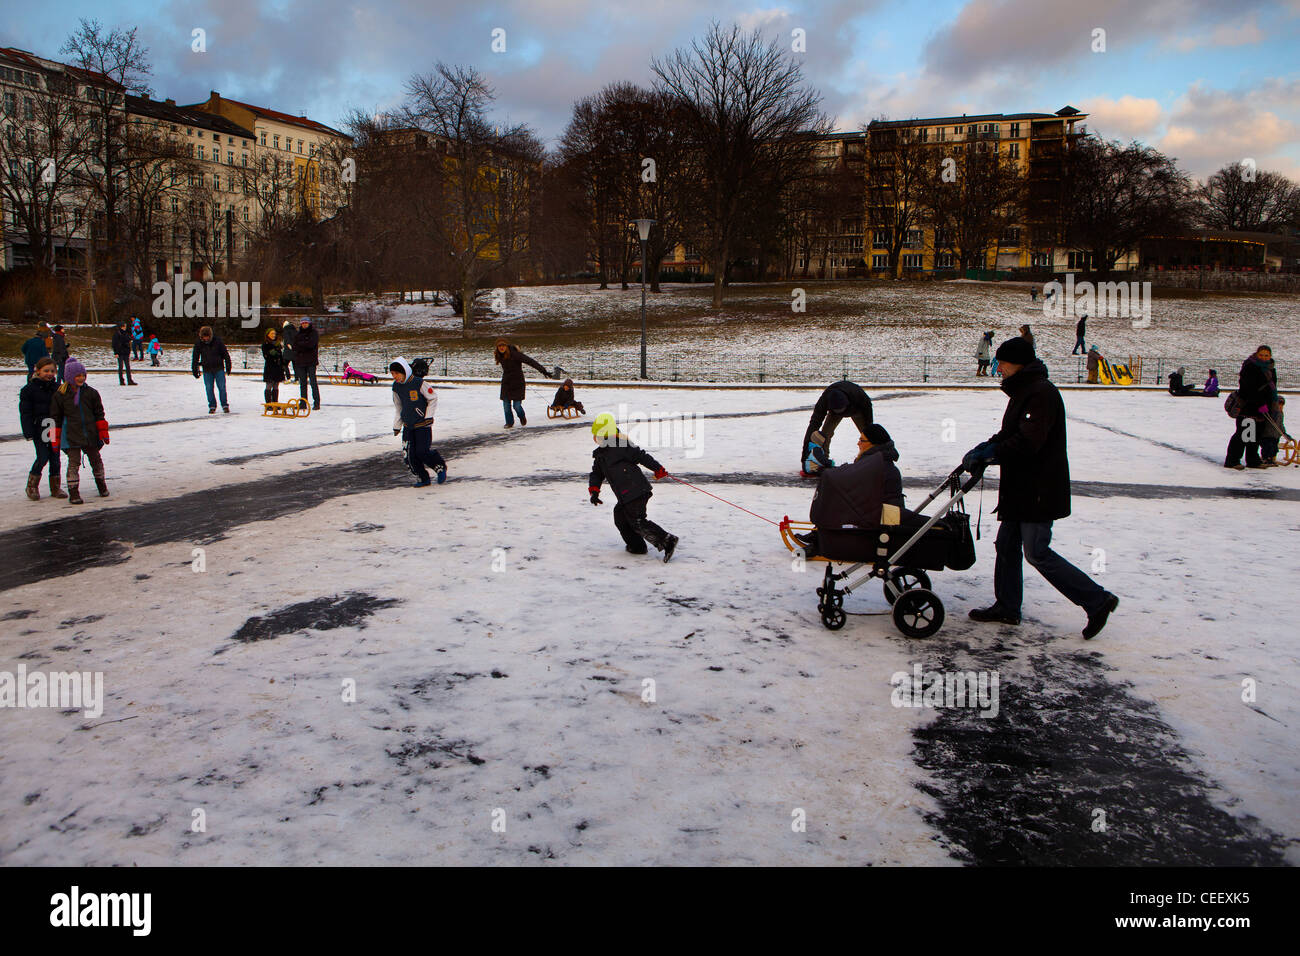 Kids skating on the frozen pond in the Volkspark in Weinberg, Berlin - Stock Image